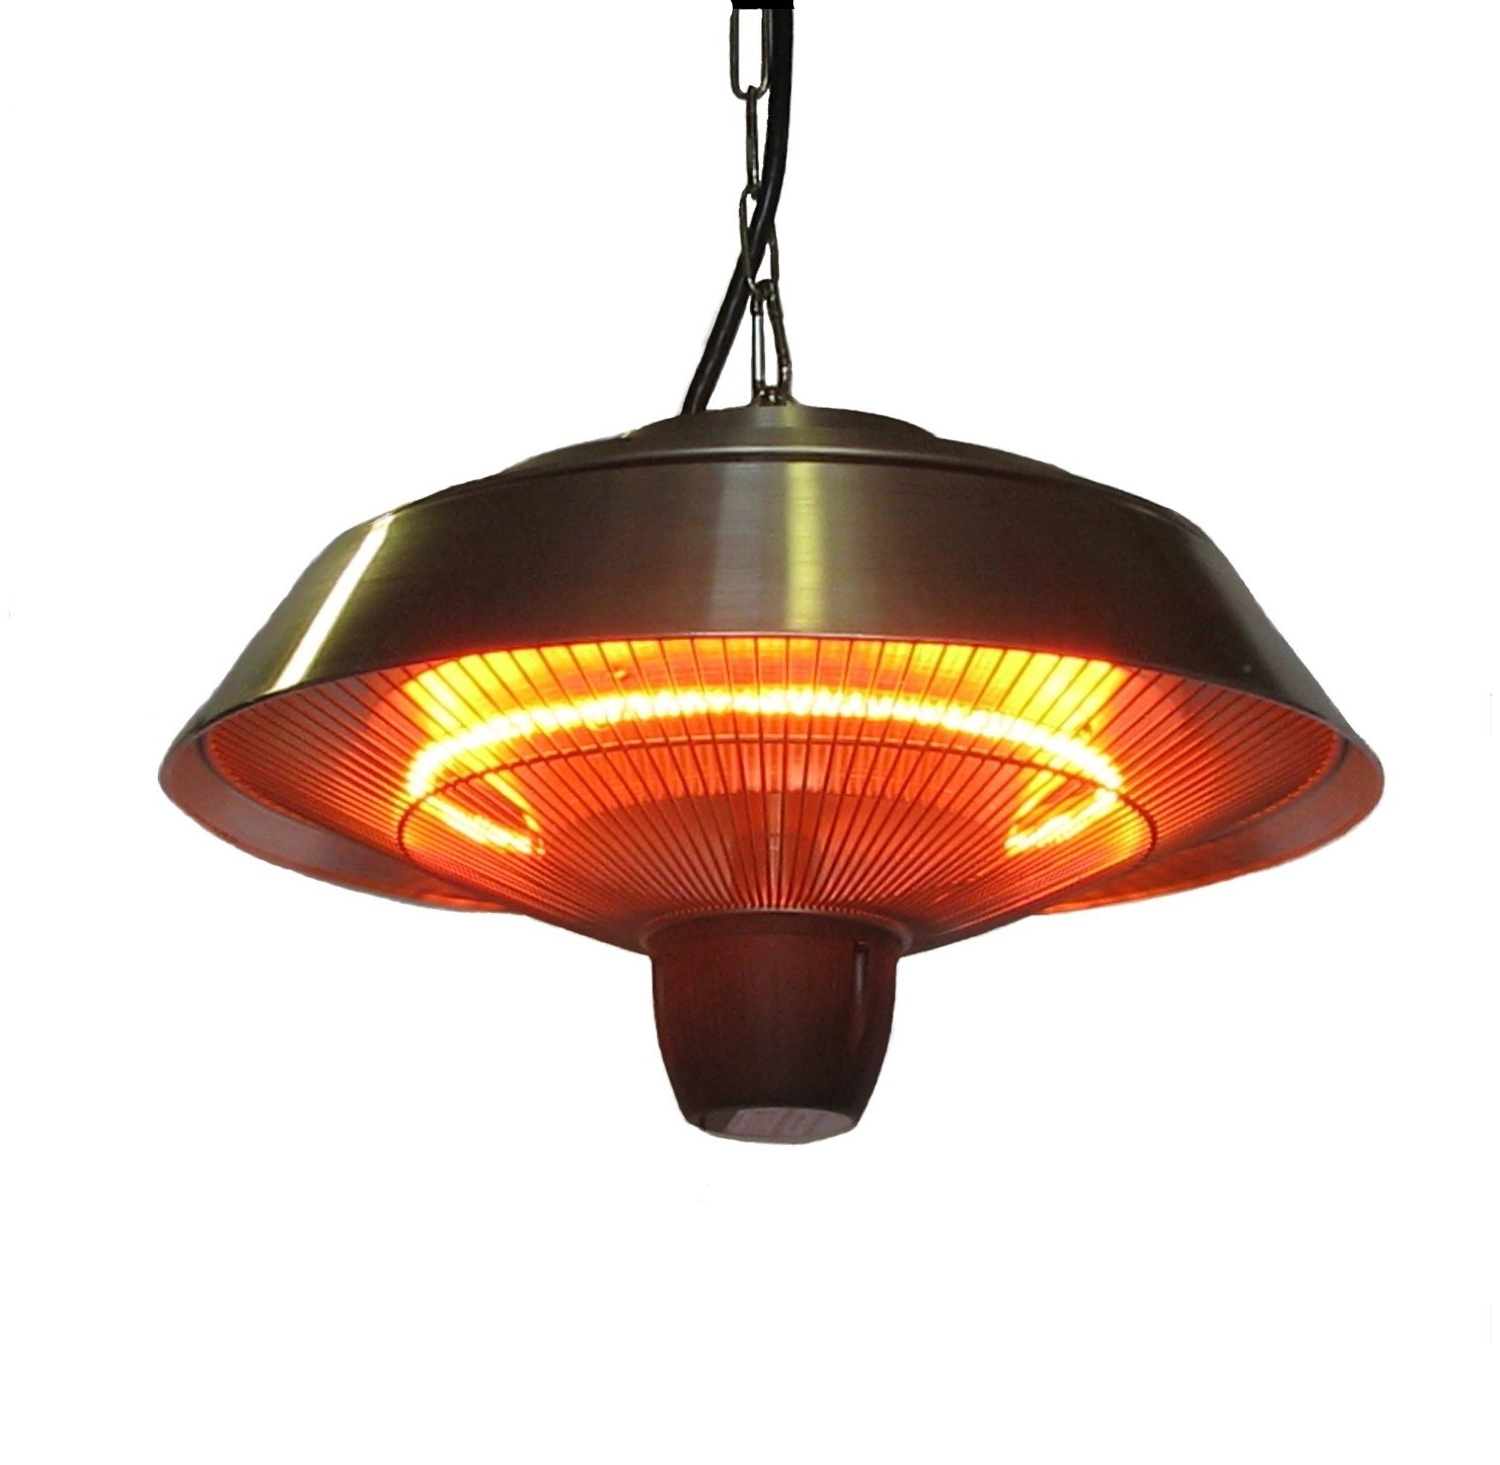 Best And Newest Interior: Hunter Ceiling Fan Light Kits Menards Ceiling, Menards Within Quality Outdoor Ceiling Fans (View 11 of 20)